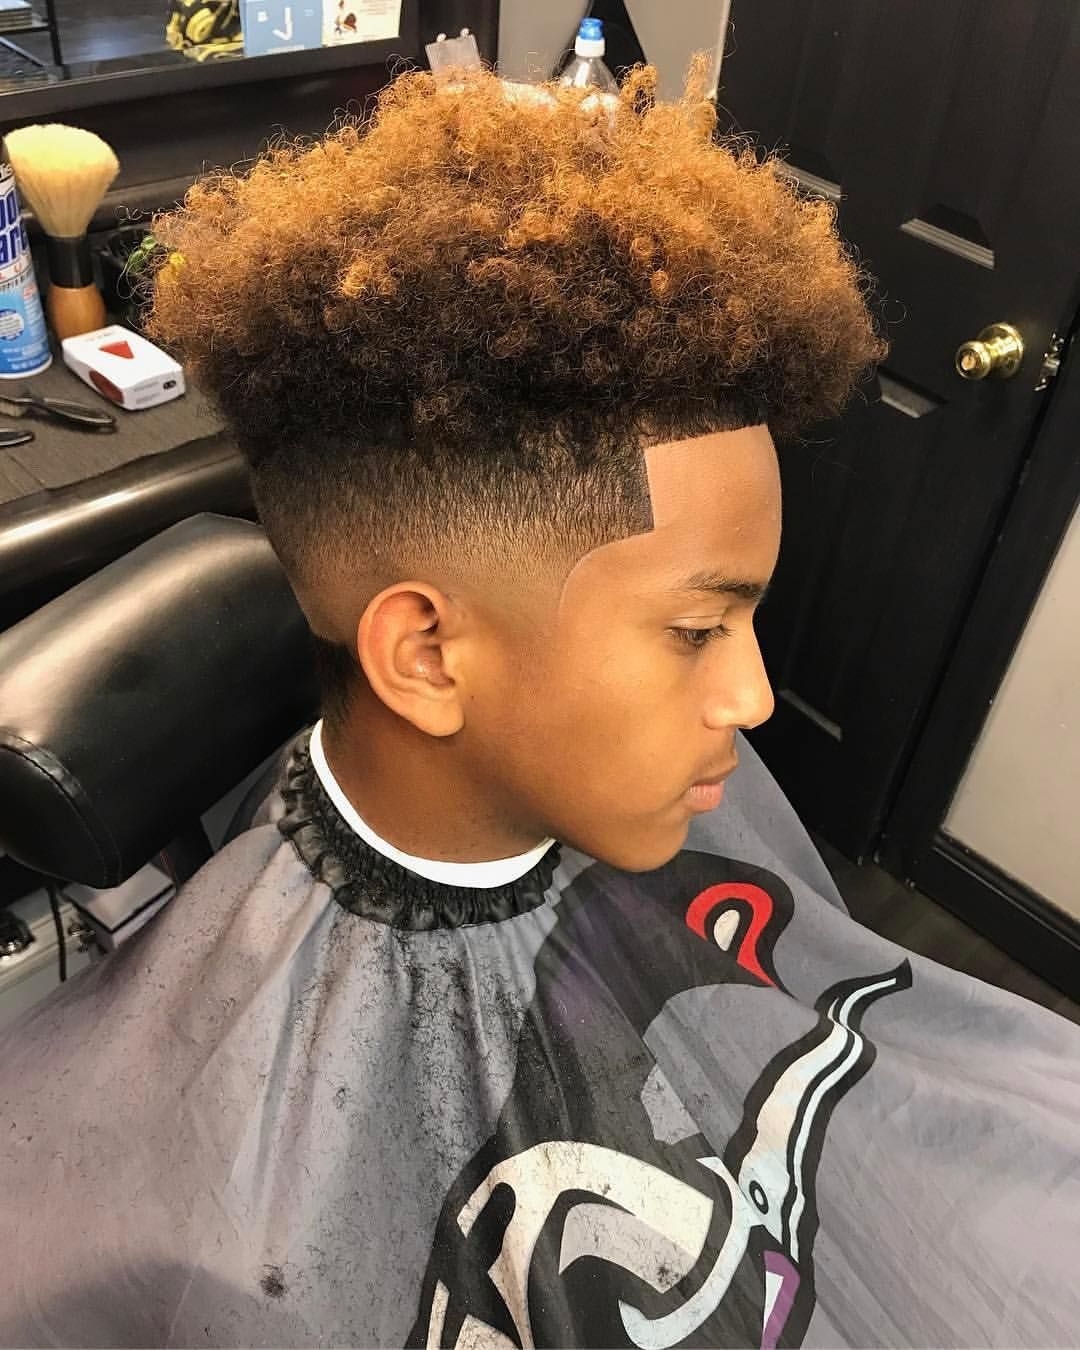 macho_rodriguez 19 years old | Boys colored hair, Black boys haircuts, Boy  hairstyles